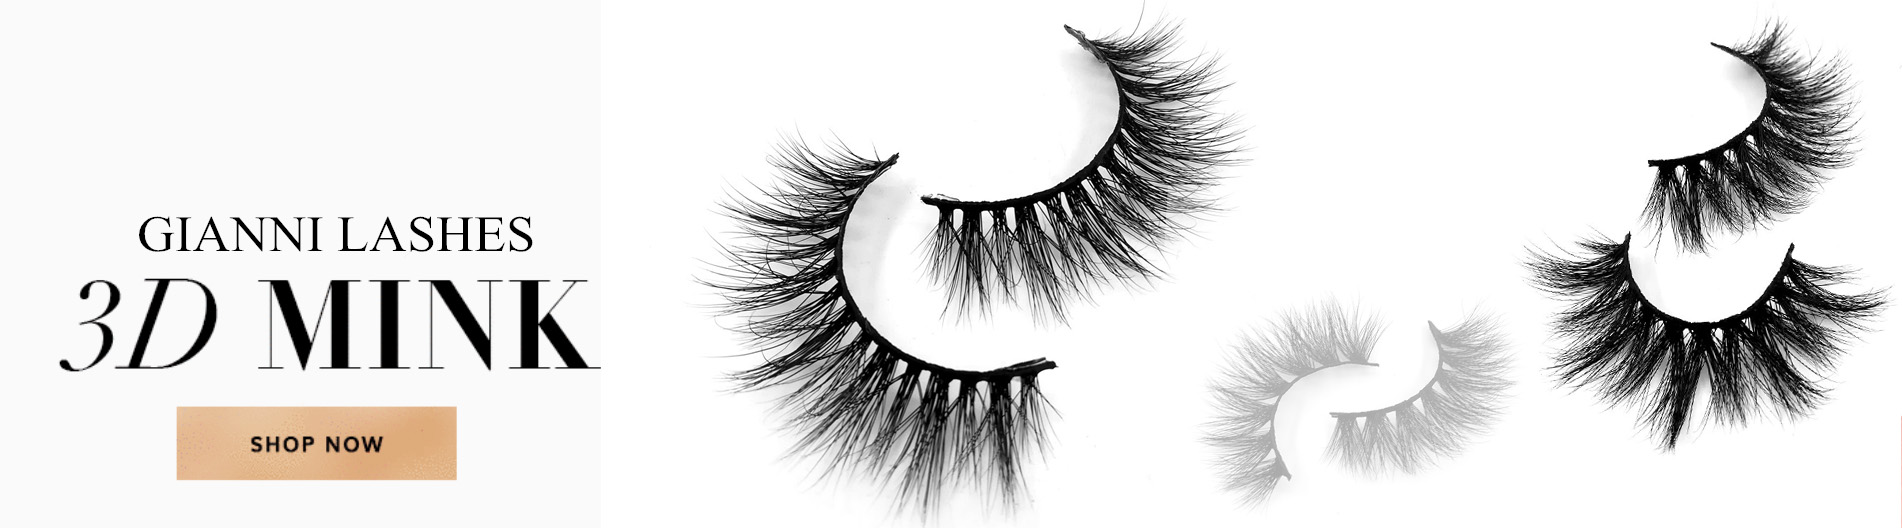 9695fc87951 Wholesale Mink Lashes Vendor 3D Mink Lashes Strip Manufacturer